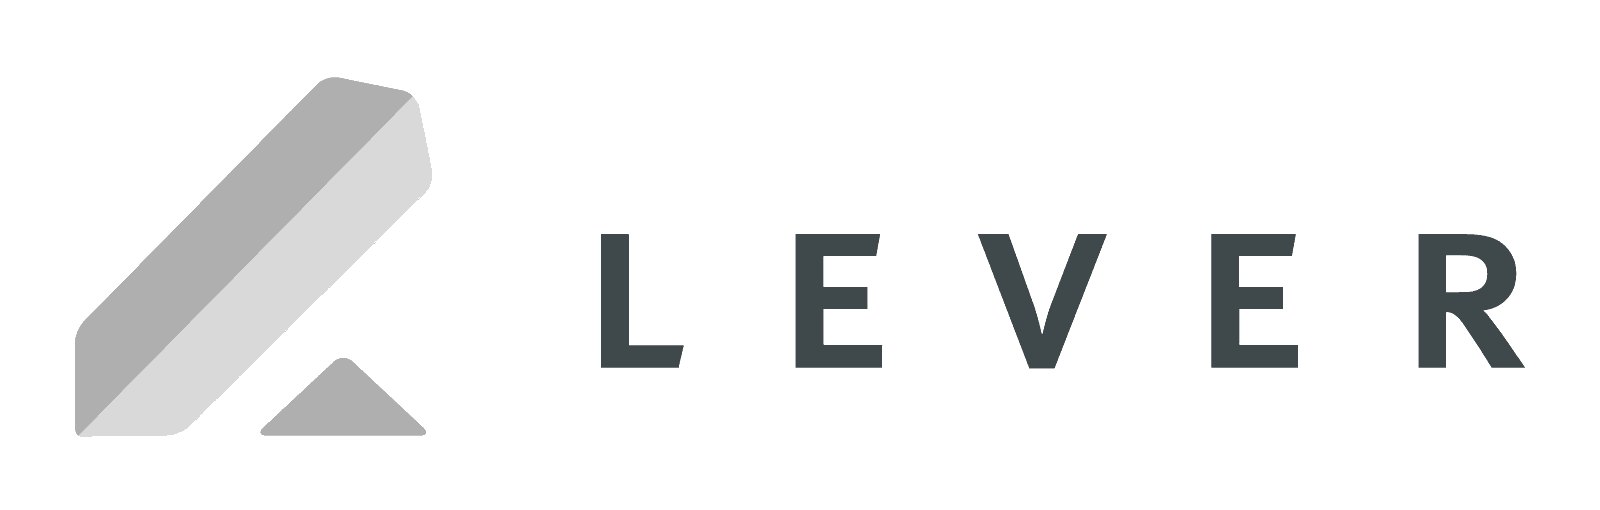 lever.co